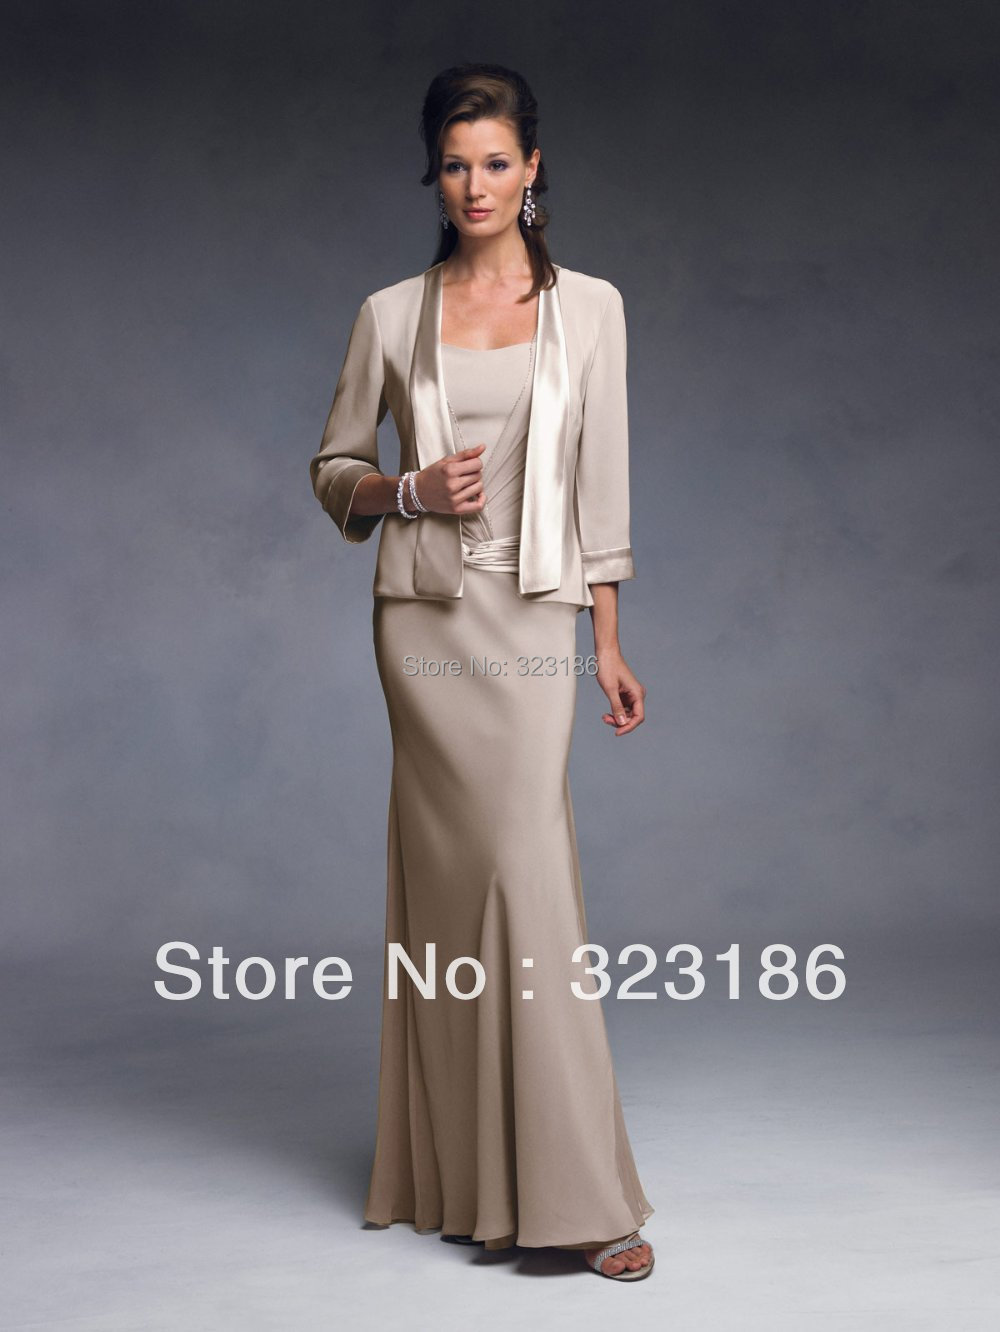 Long Jacket Simple Style Evening Dress Hot Sexy Evening Dress Gowns Party Dresses Best for Women